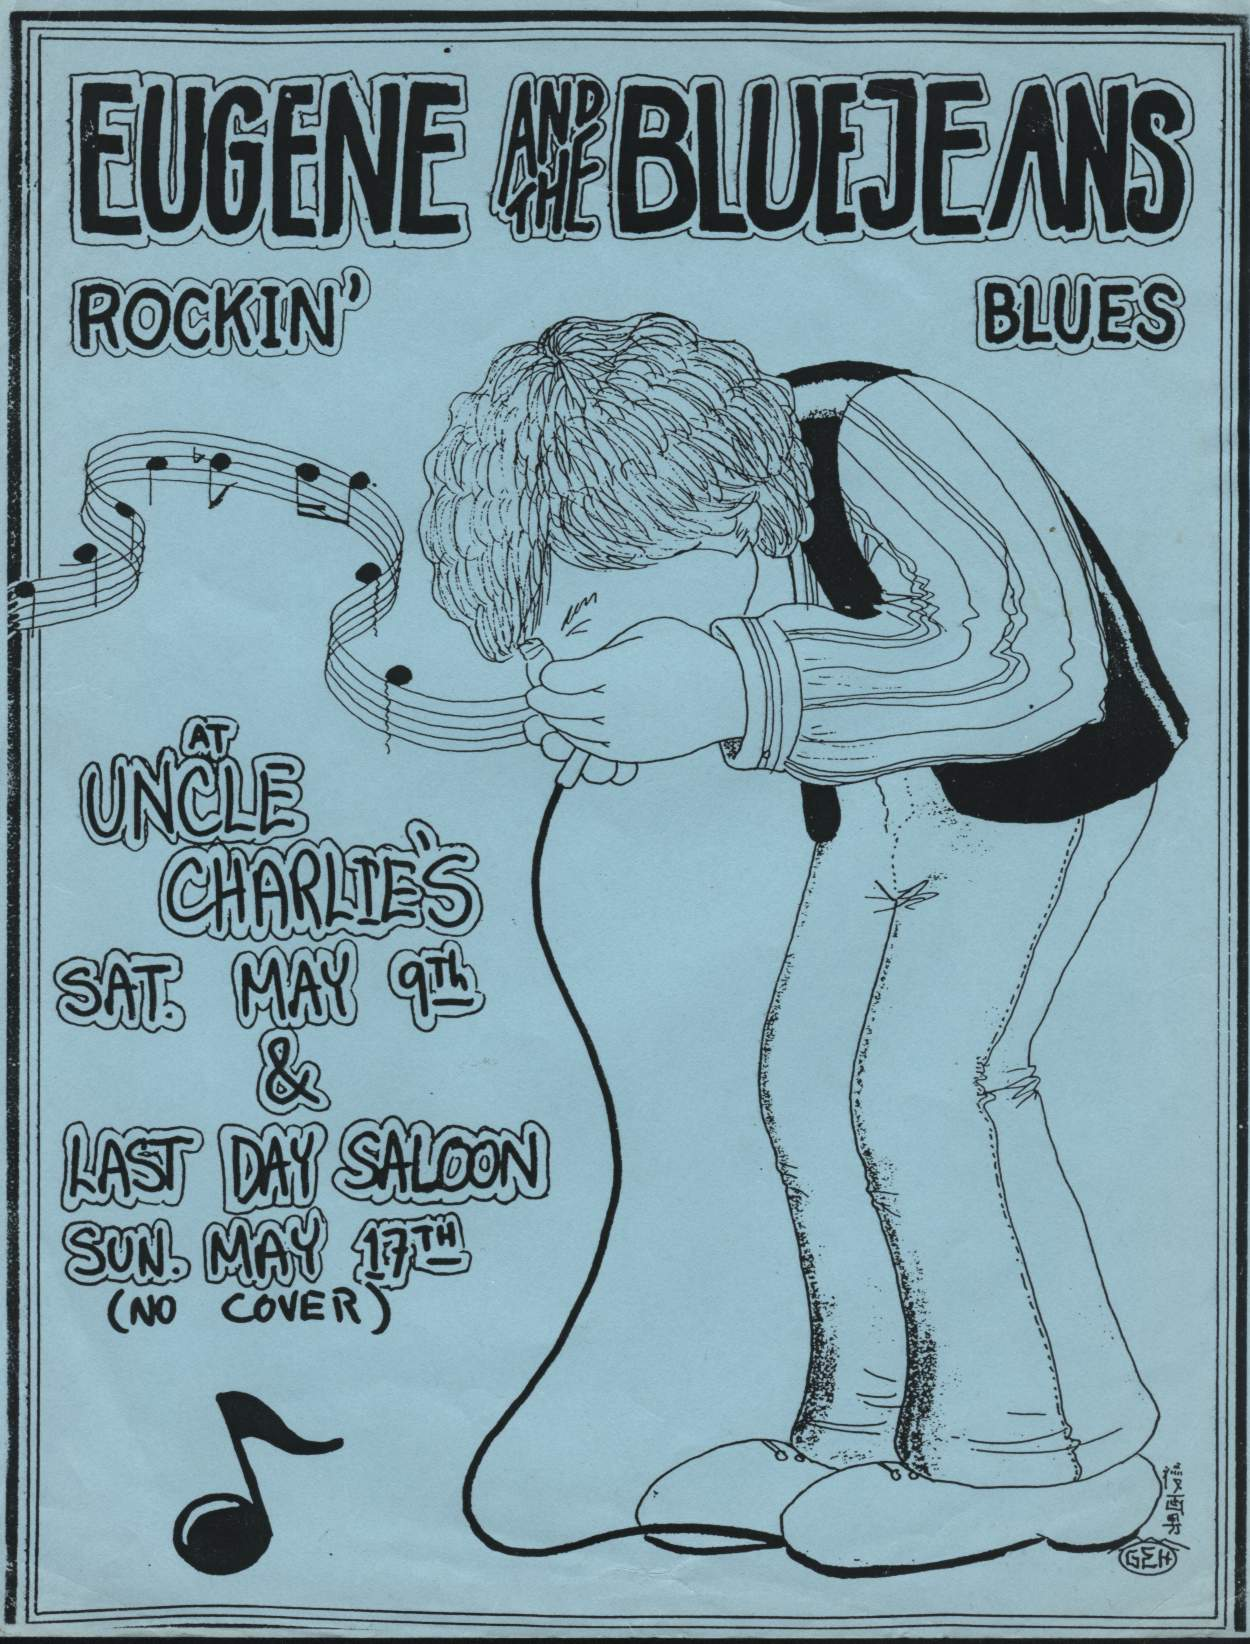 Eugene & The Bluejeans Poster for Uncle Charlies